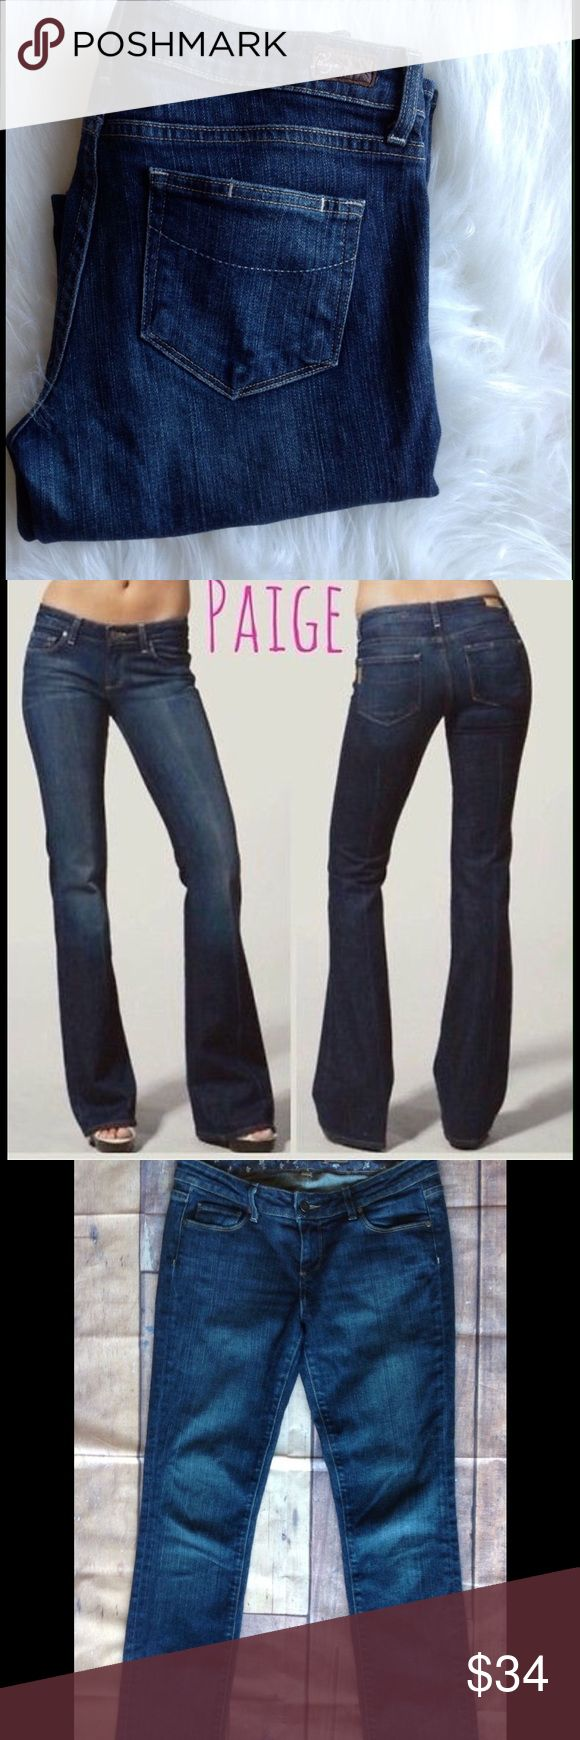 """PAIGE Premium Denim Jeans Blue Heights Size 29x34 AWSOME LOOKING PAIR OF PAIGE PREMIUM BLUE HEIGHTS JEANS.  Gorgeous Classy PAIGE PREMIUM Blue Heights Jeans Size 29, Inseam 34"""", Rise 8"""" Very Good Preloved Condition at a VERY LOW PRICE Very Classy, yet Sexy Retail For $199.99 From a """"Smoke Free"""" Environment  Will be shipped within 24 hours of payment.  These Jeans are very nice. There are no stains, holes or rips on these Jeans.  SKU 14 Paige Jeans Jeans Straight Leg"""